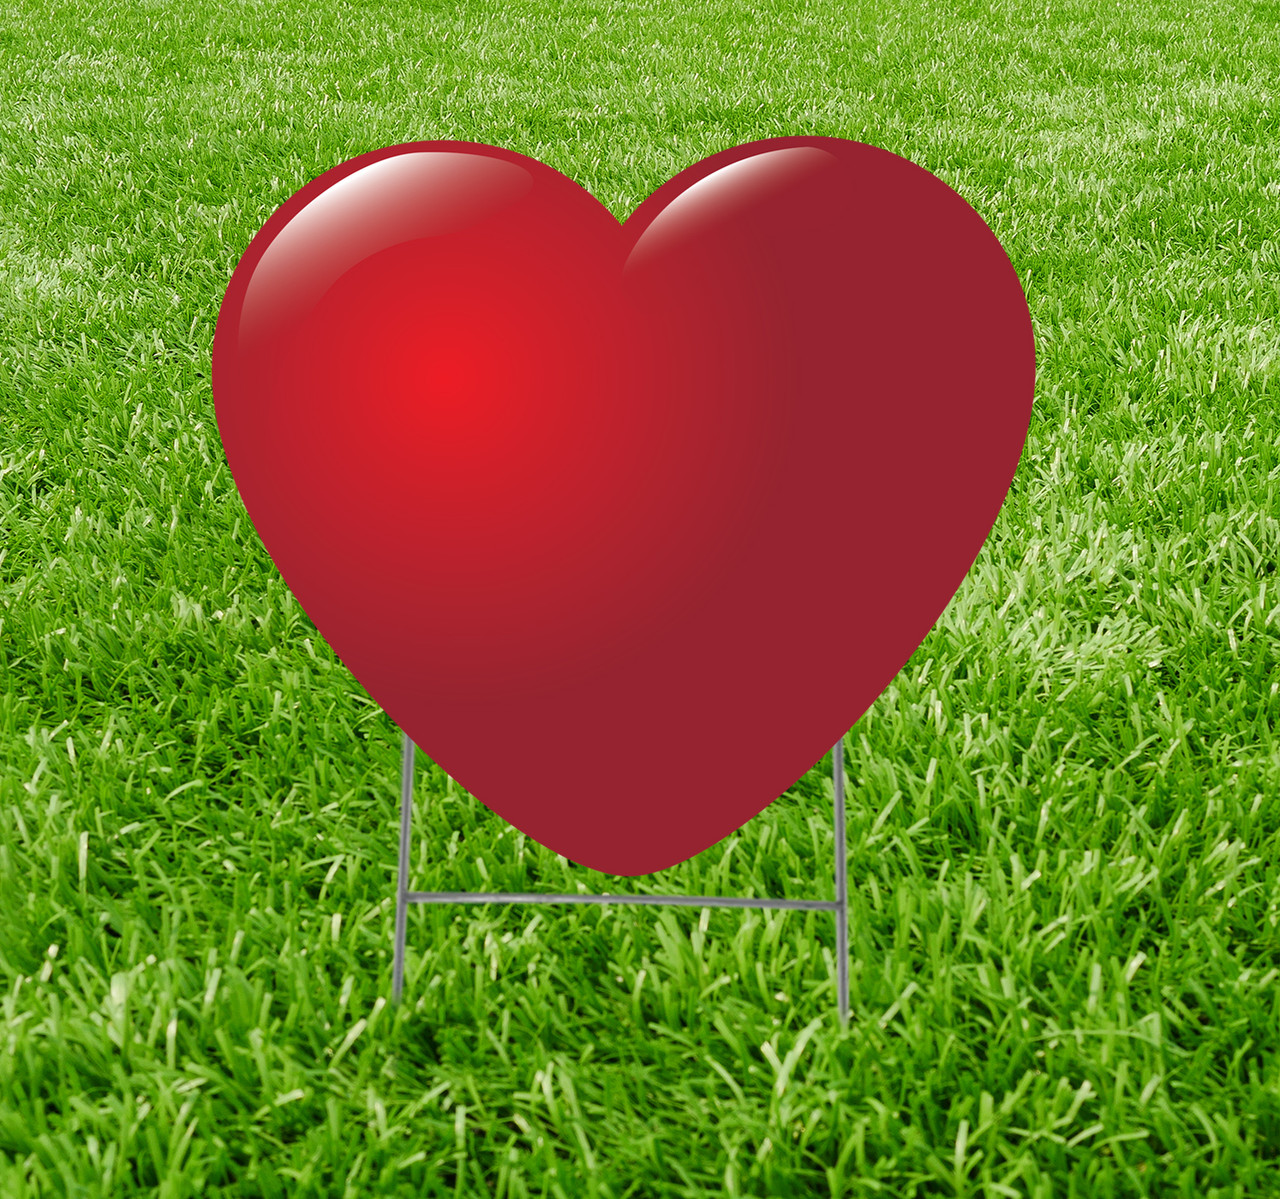 Coroplast outdoor yard sign icon of a red heart.